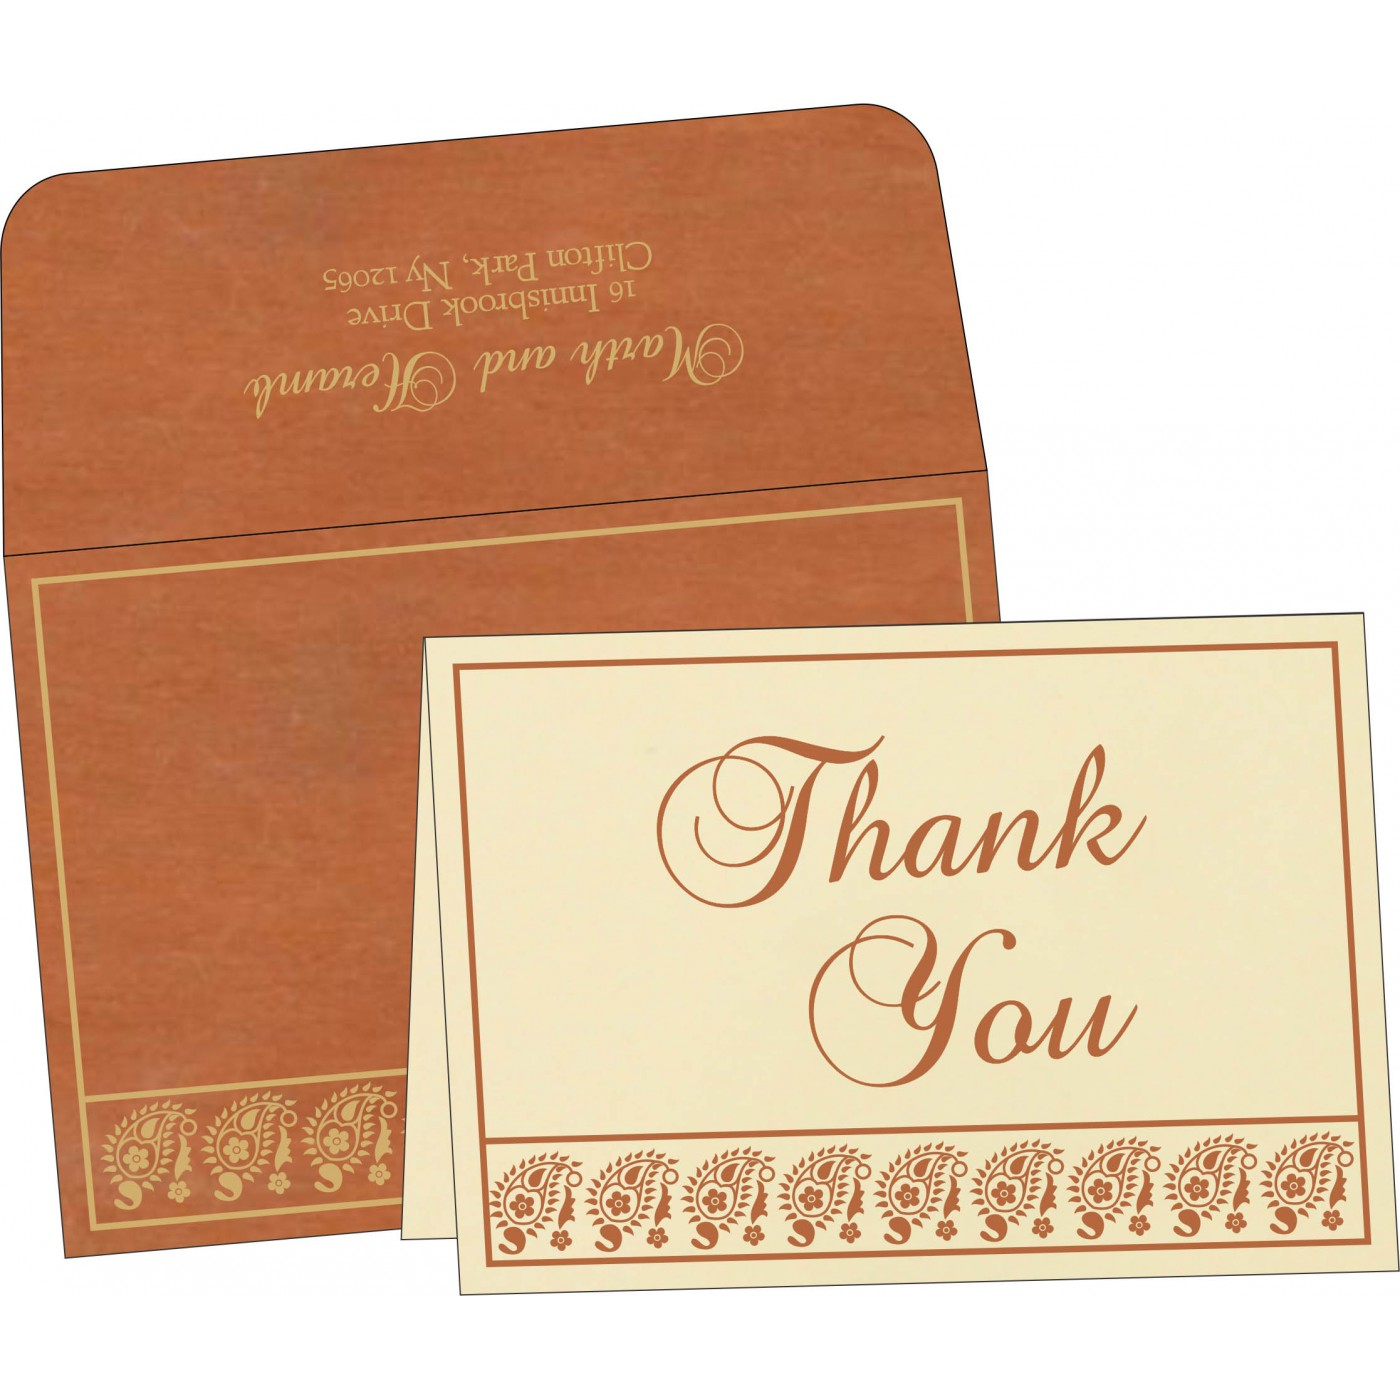 Thank You Cards - TYC-8218C